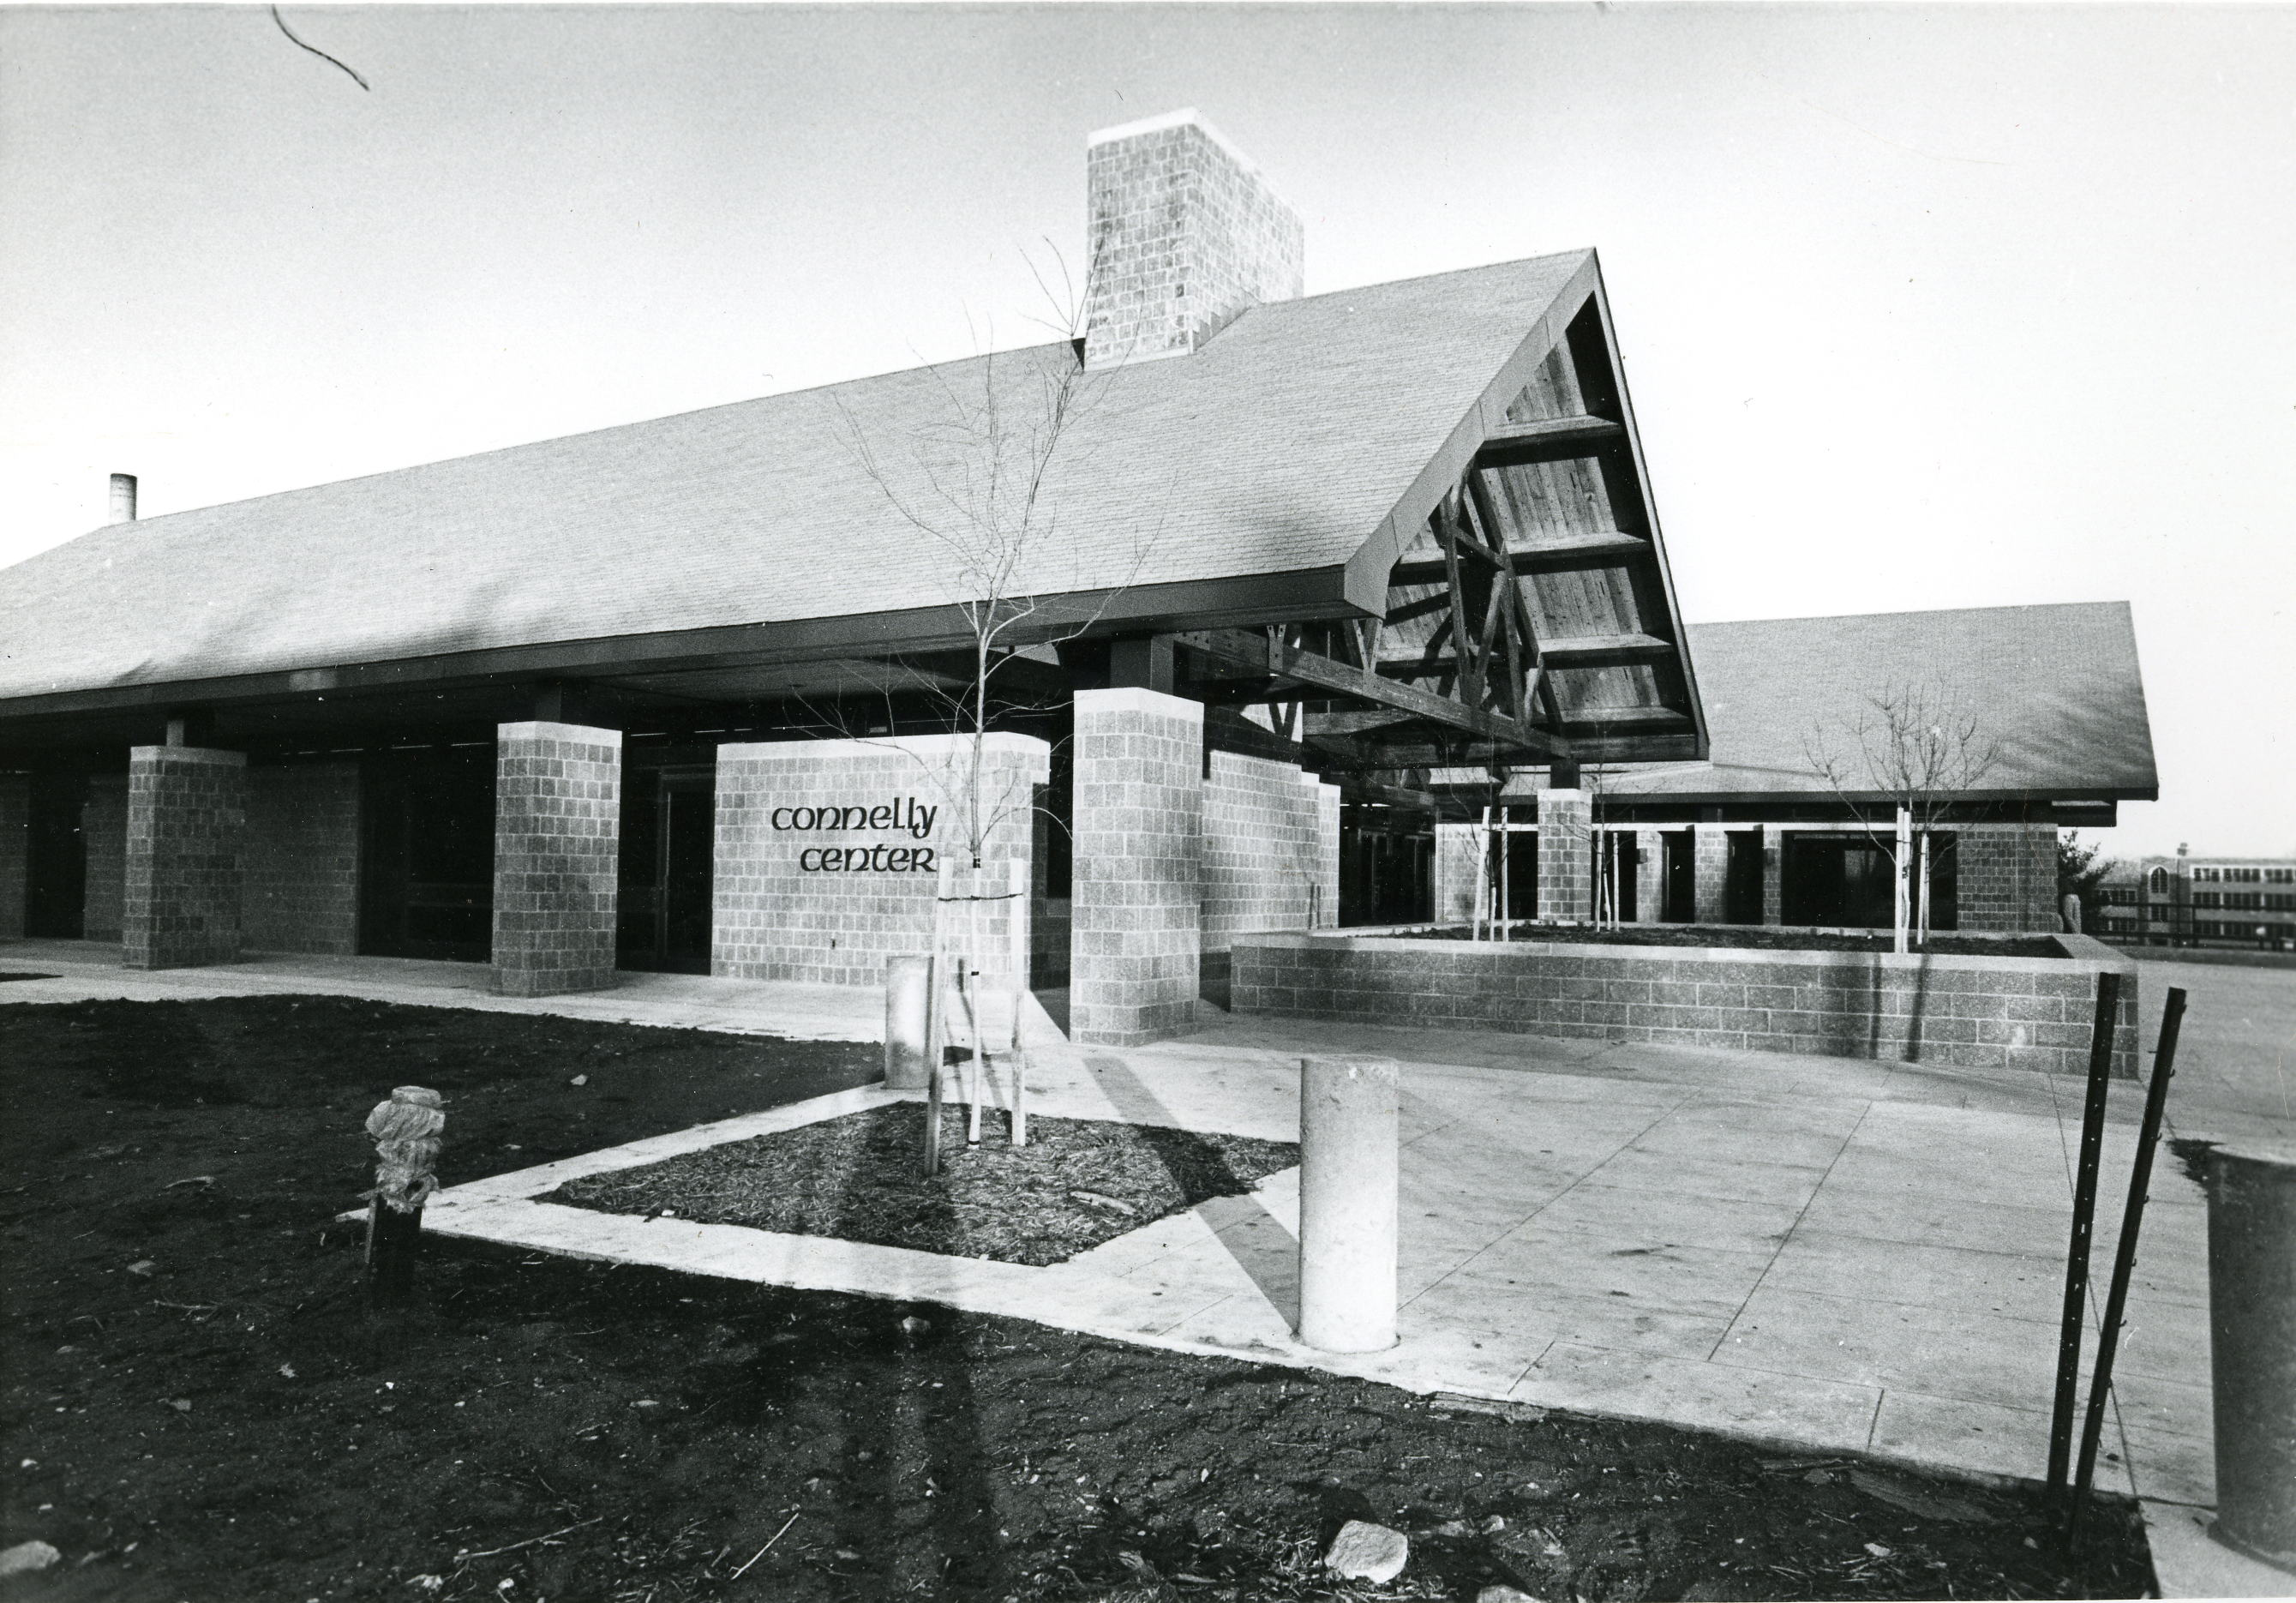 Connelly Center, 1980